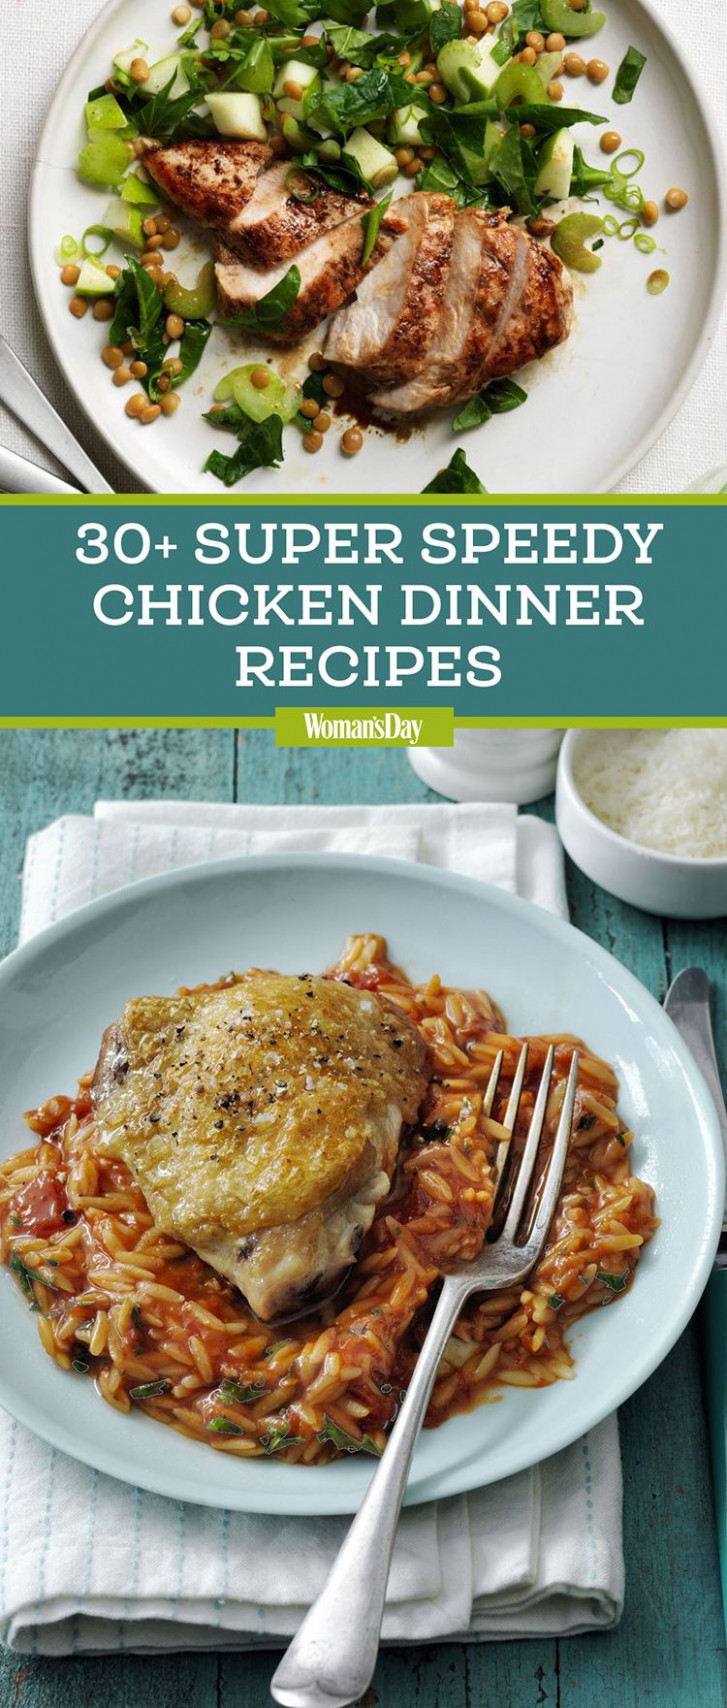 12 Easy Chicken Dinner Recipes - Best Chicken Dishes - dinner recipes chicken breast